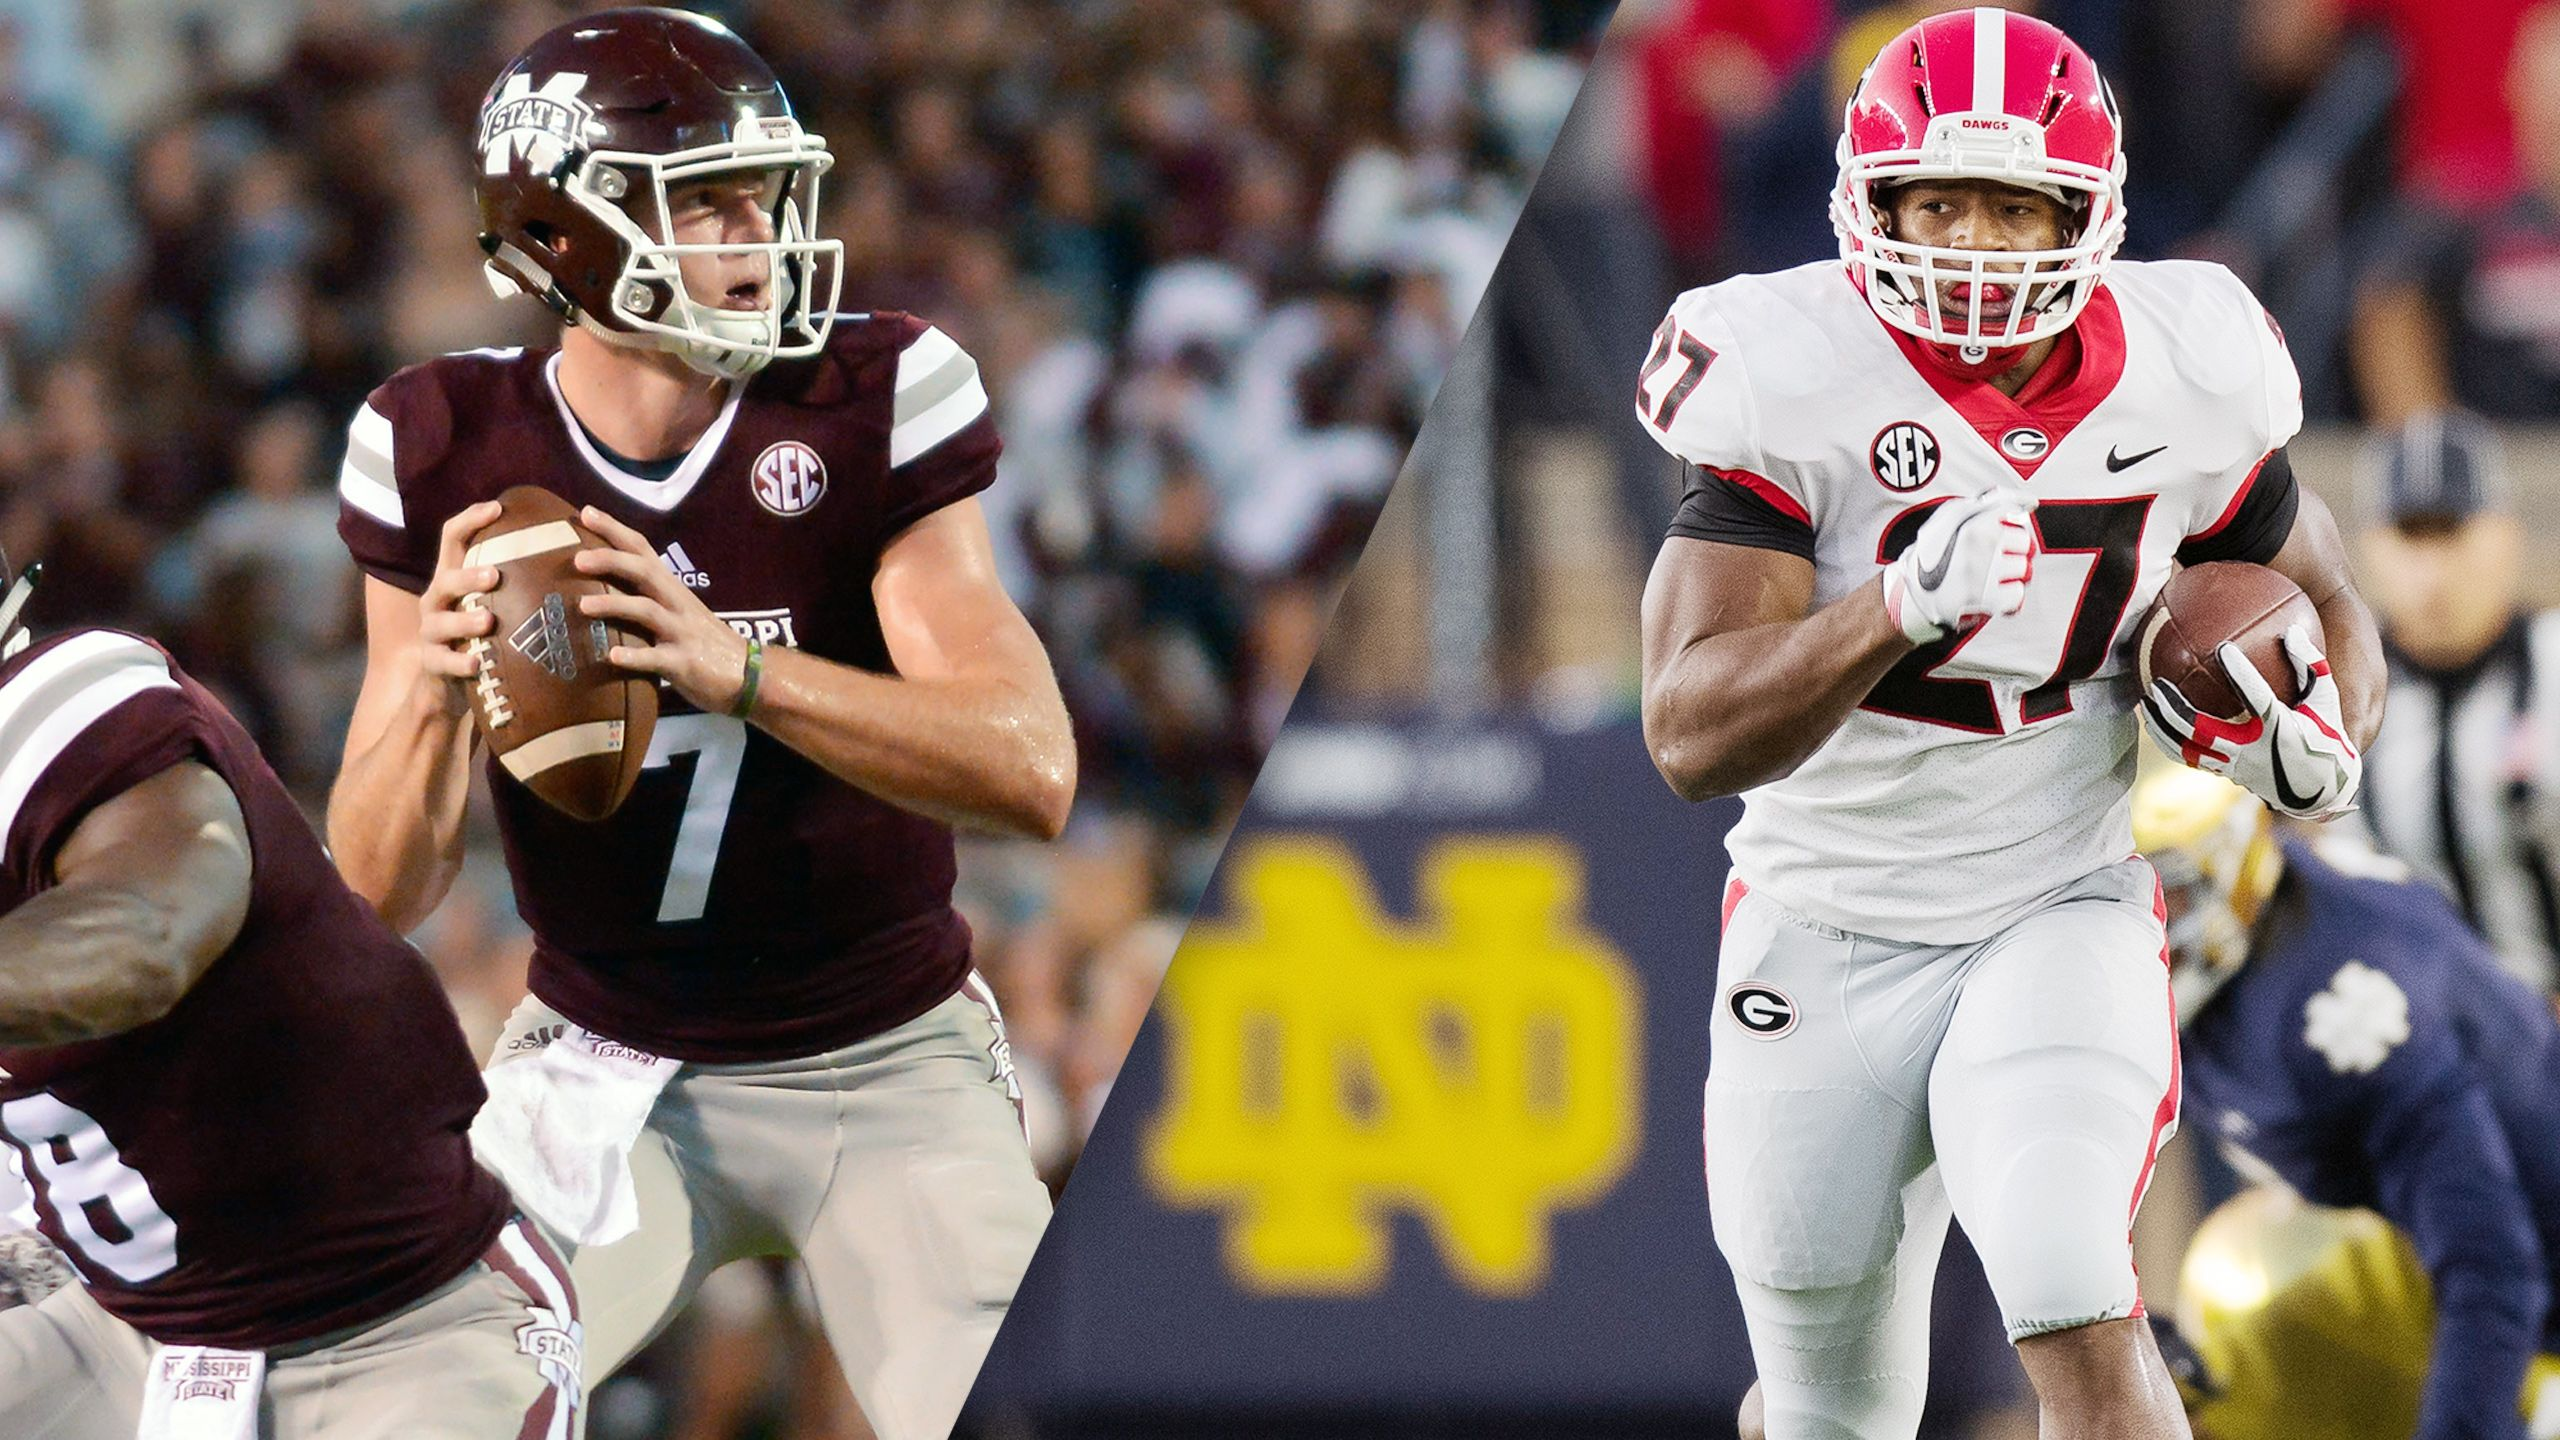 #17 Mississippi State vs. #11 Georgia (Football) (re-air)